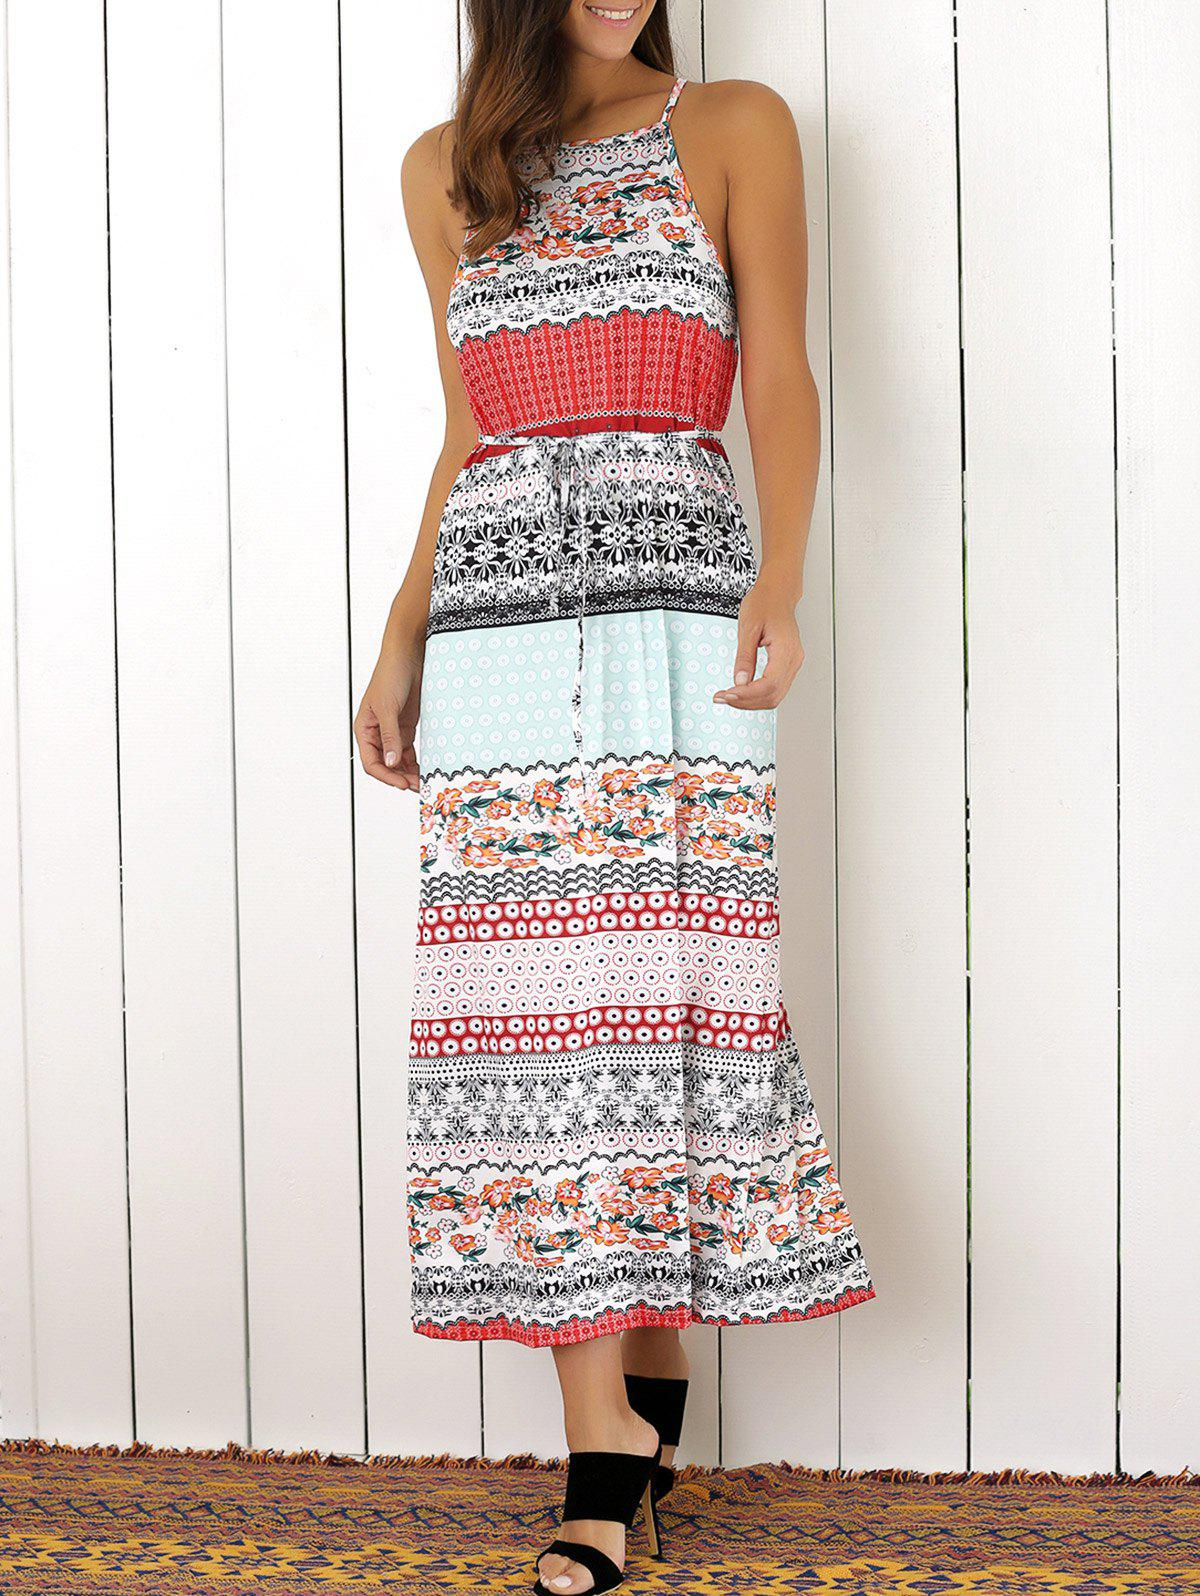 Bohemian Sleeveless Slit Colorful Ethnic Print Dress - COLORMIX L